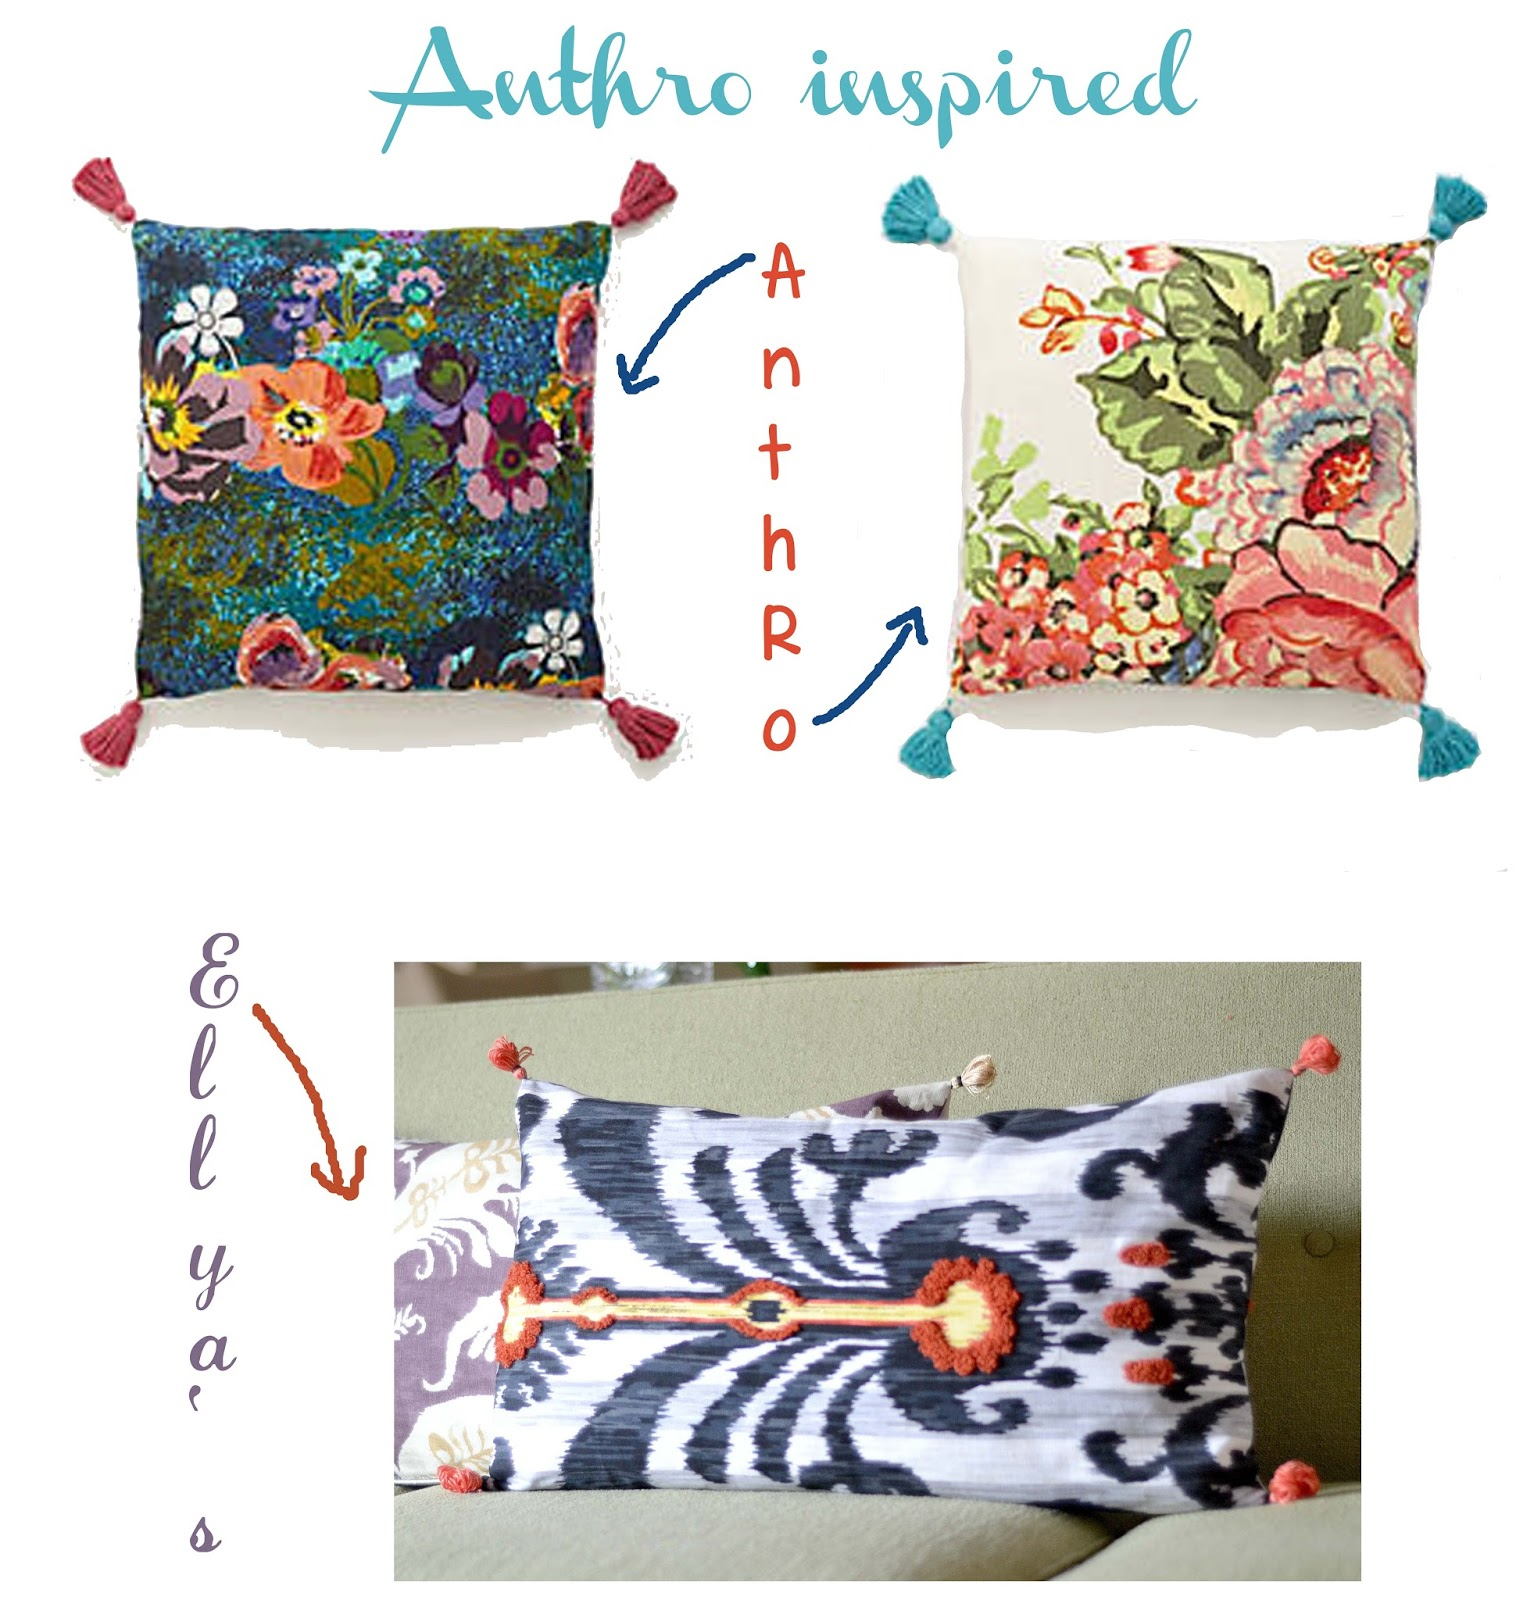 Floor Cushions Anthropologie : Curiositaellya: Home Made Anthro Inspired Throw Pillows {DIY}